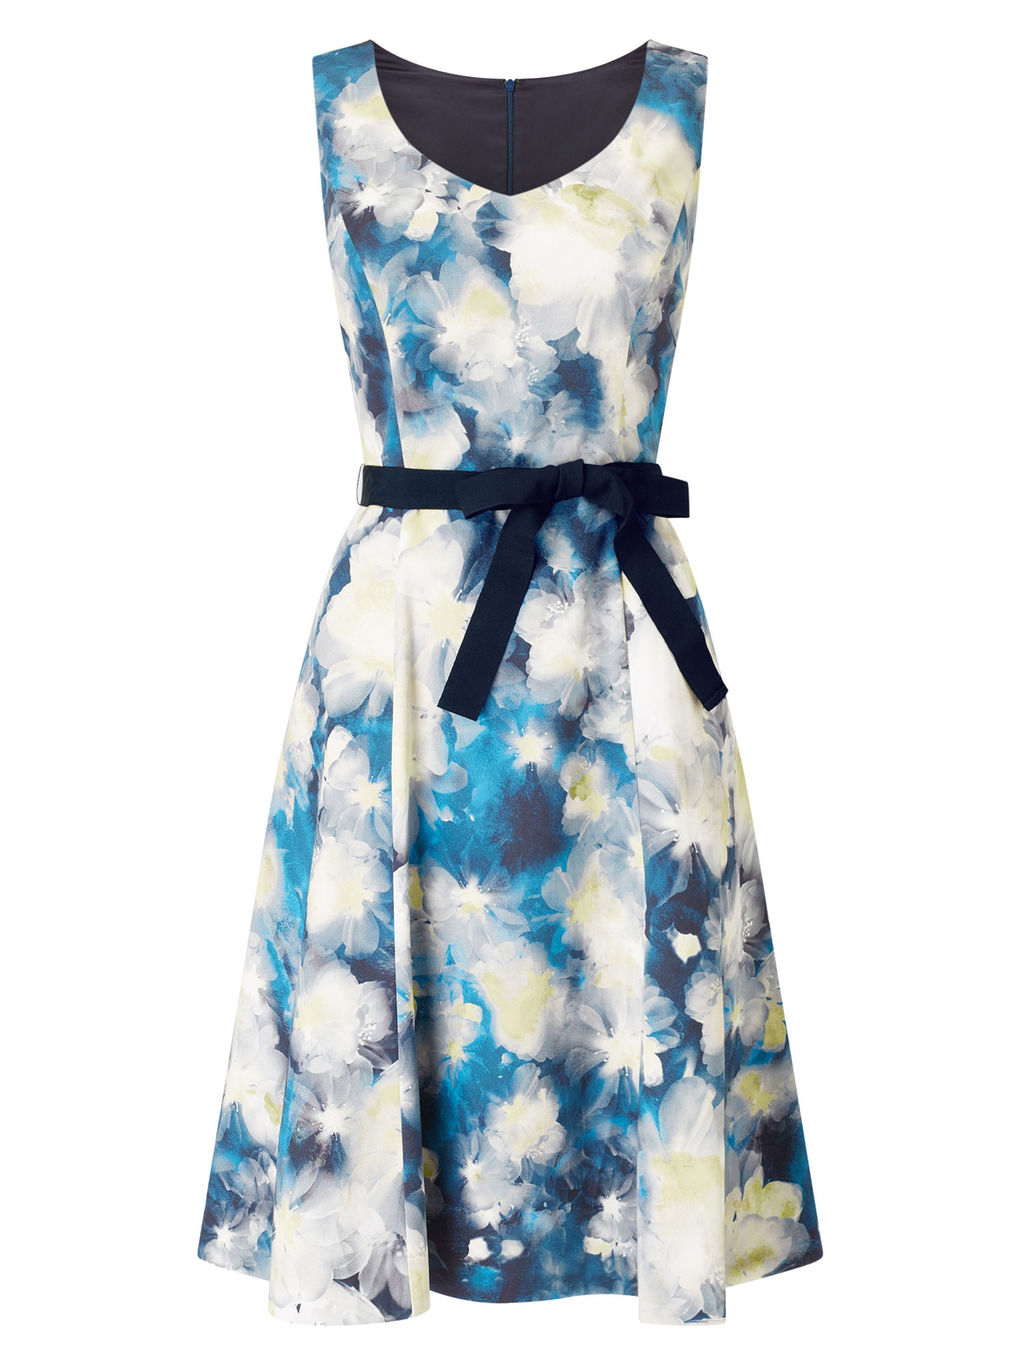 Blurred Print Prom Shape - neckline: v-neck; sleeve style: sleeveless; style: full skirt; waist detail: belted waist/tie at waist/drawstring; secondary colour: white; predominant colour: diva blue; occasions: evening; length: on the knee; fit: fitted at waist & bust; fibres: cotton - stretch; sleeve length: sleeveless; pattern type: fabric; pattern size: big & busy; pattern: patterned/print; texture group: woven light midweight; multicoloured: multicoloured; season: s/s 2016; wardrobe: event